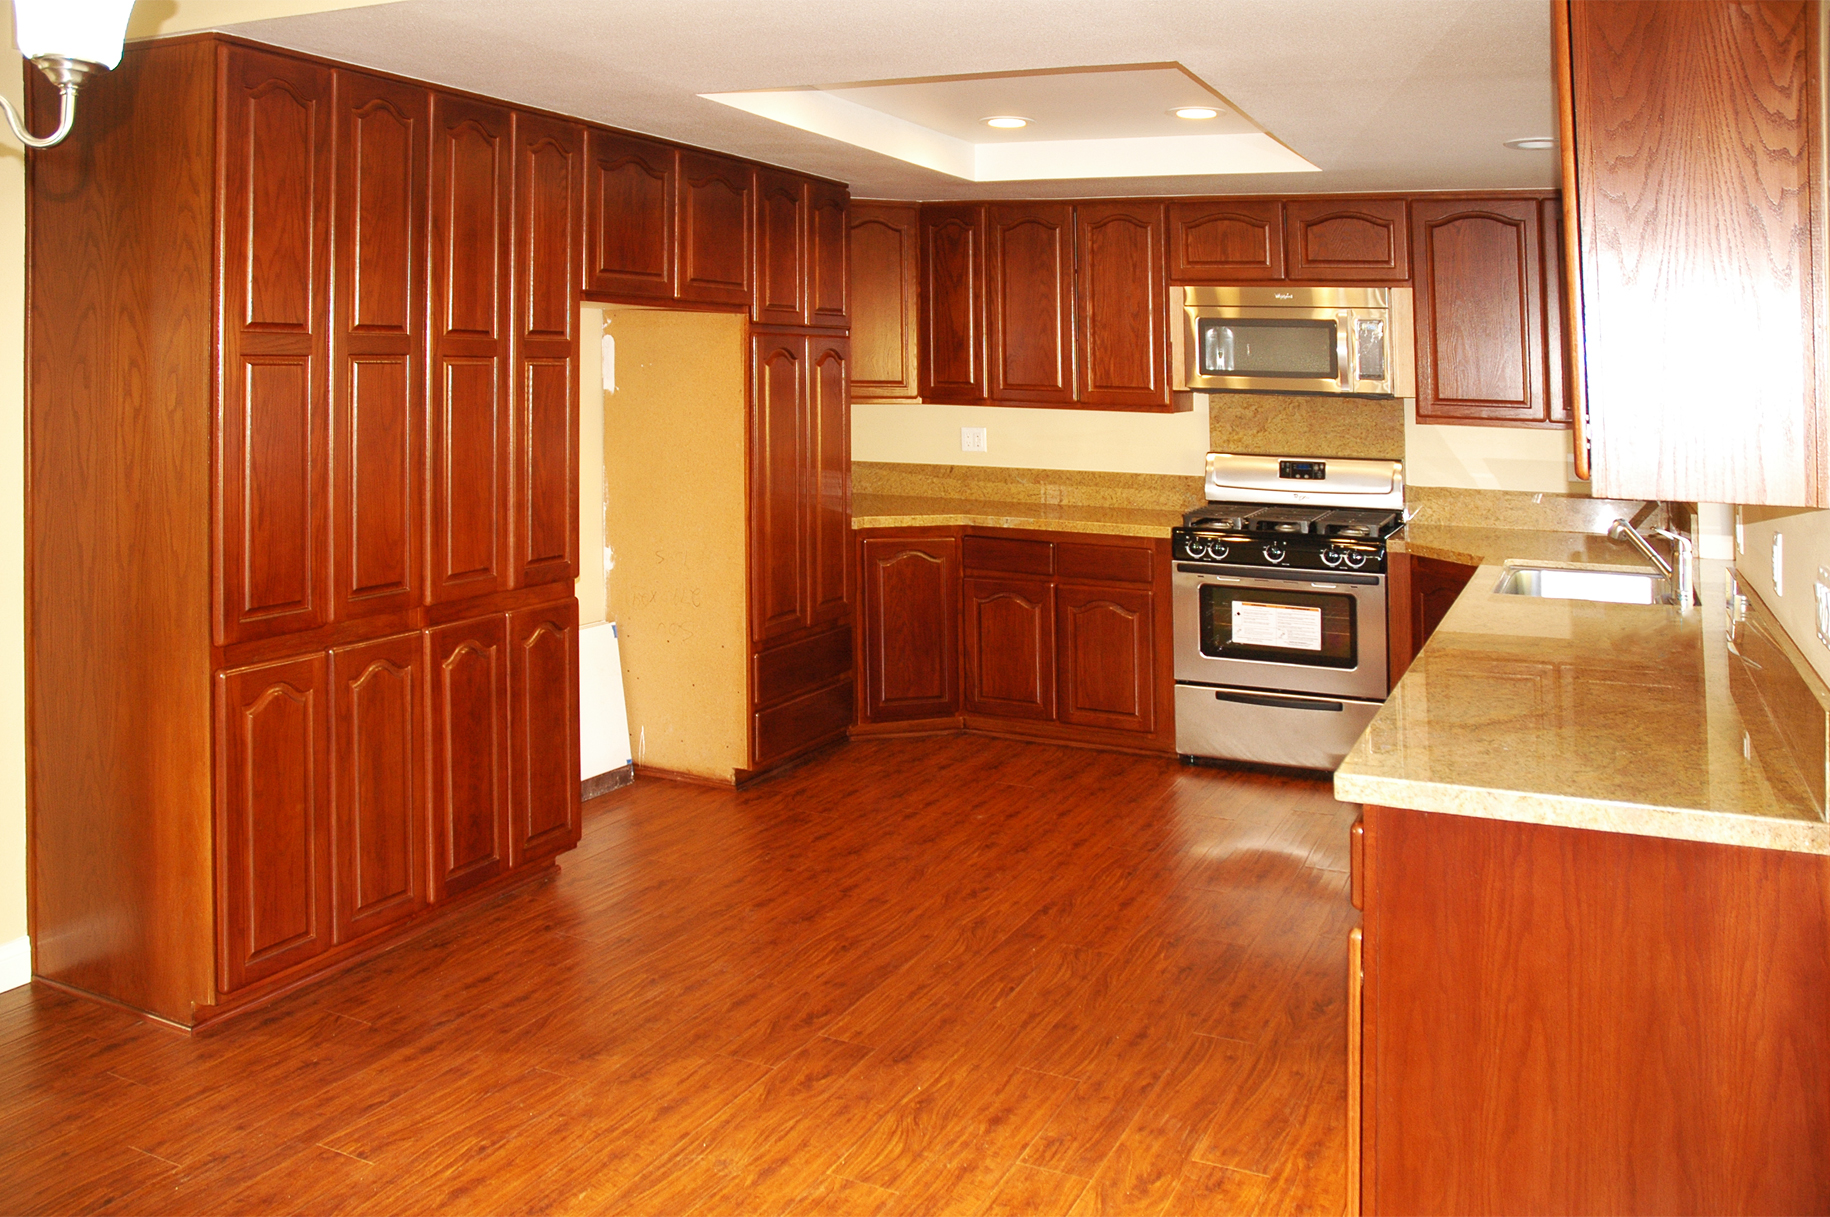 After Kitchen in Agoura Hills with new floors, stained cabinets counters and appliances.